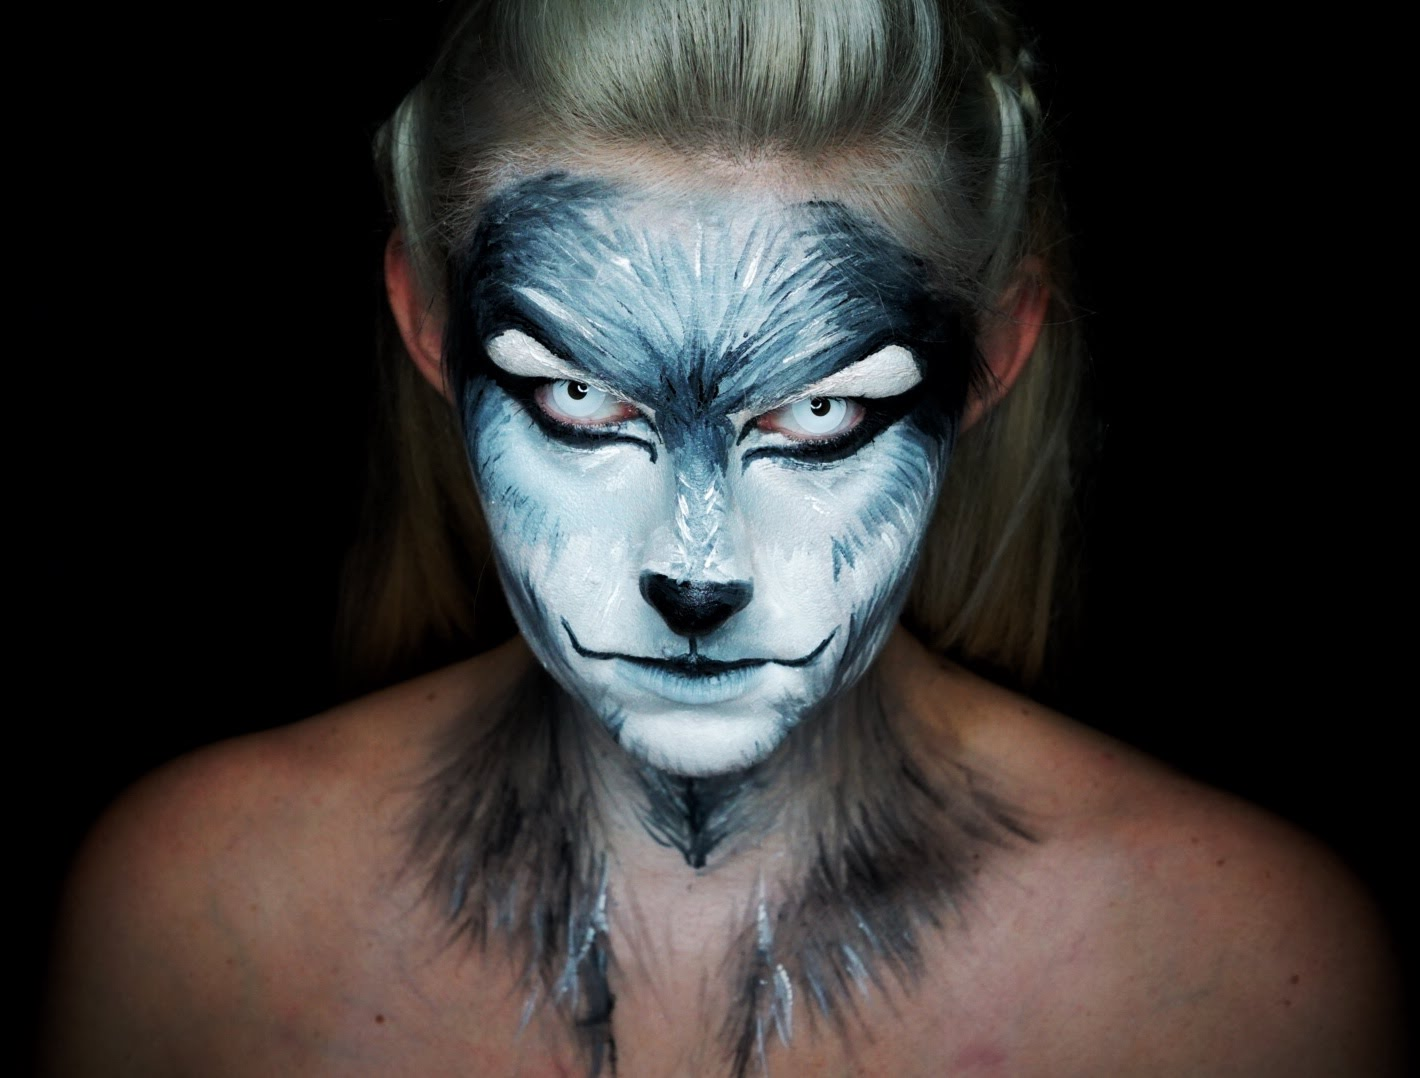 werewolf face paint, in white and grey, worn with pale blue contact lenses, by a blonde woman, halloween face paint